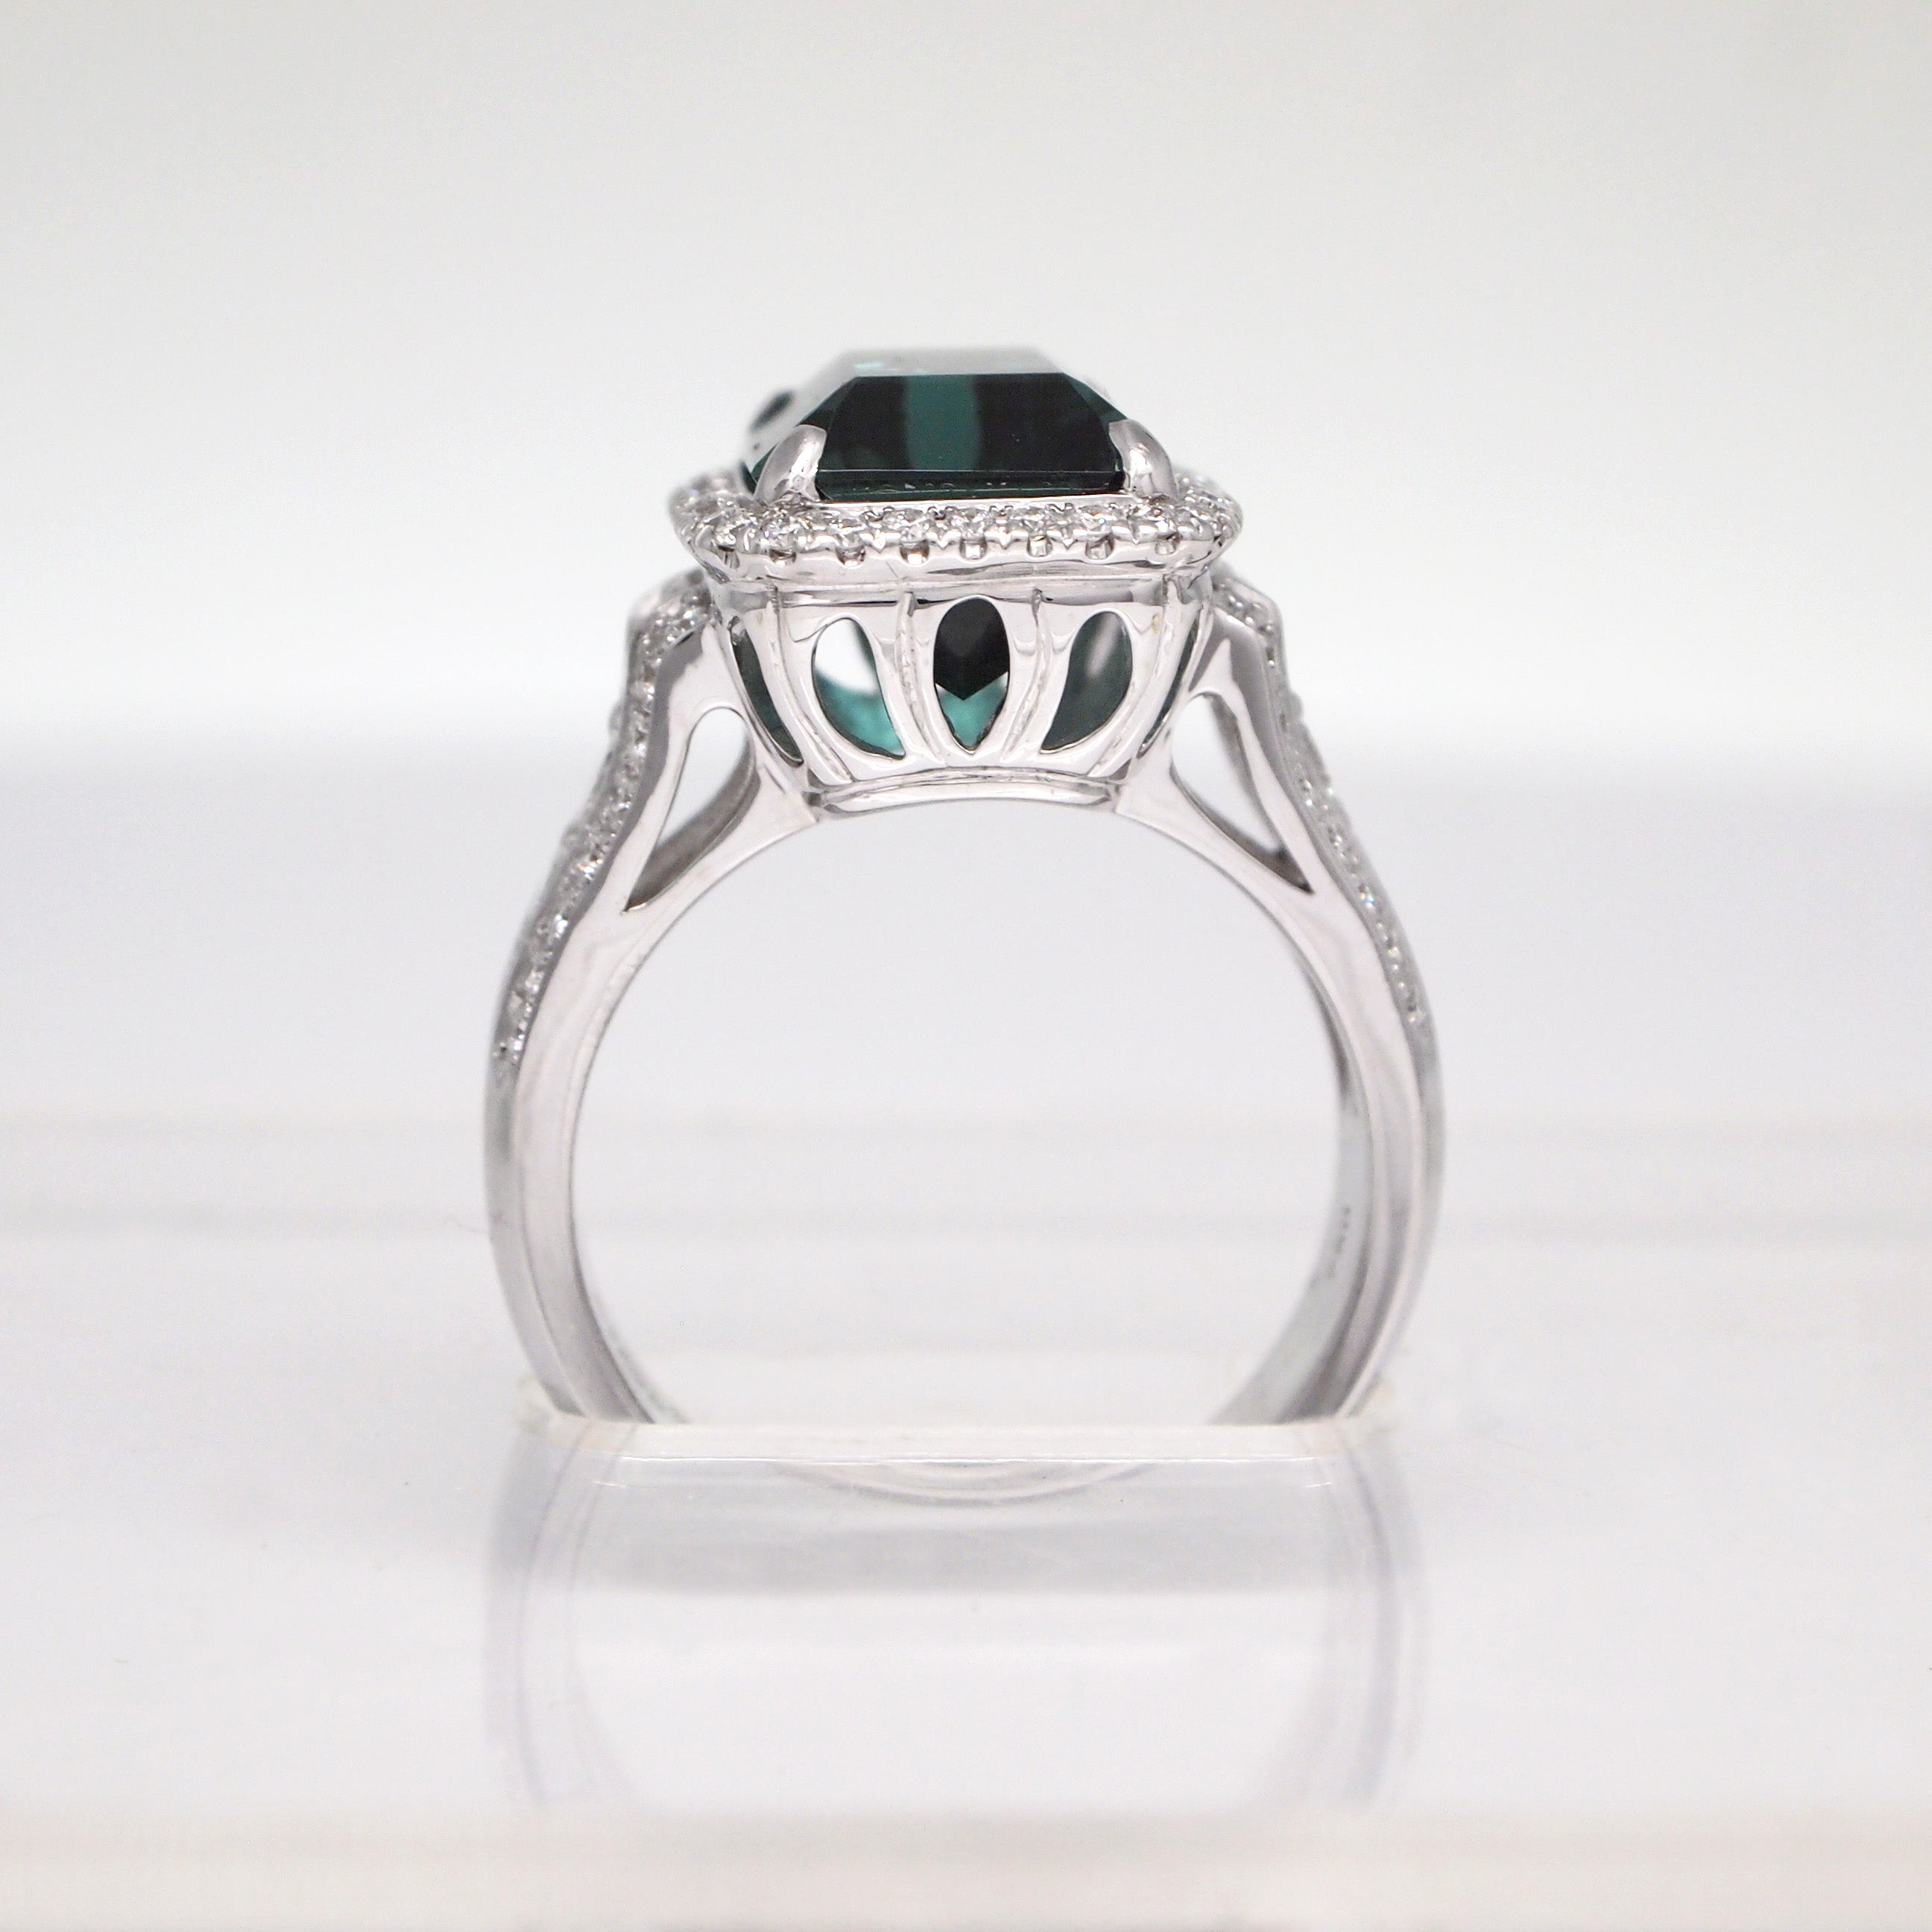 diamond ring blue raw gems the in of green products gardens with gold jewelry sun hidden silver